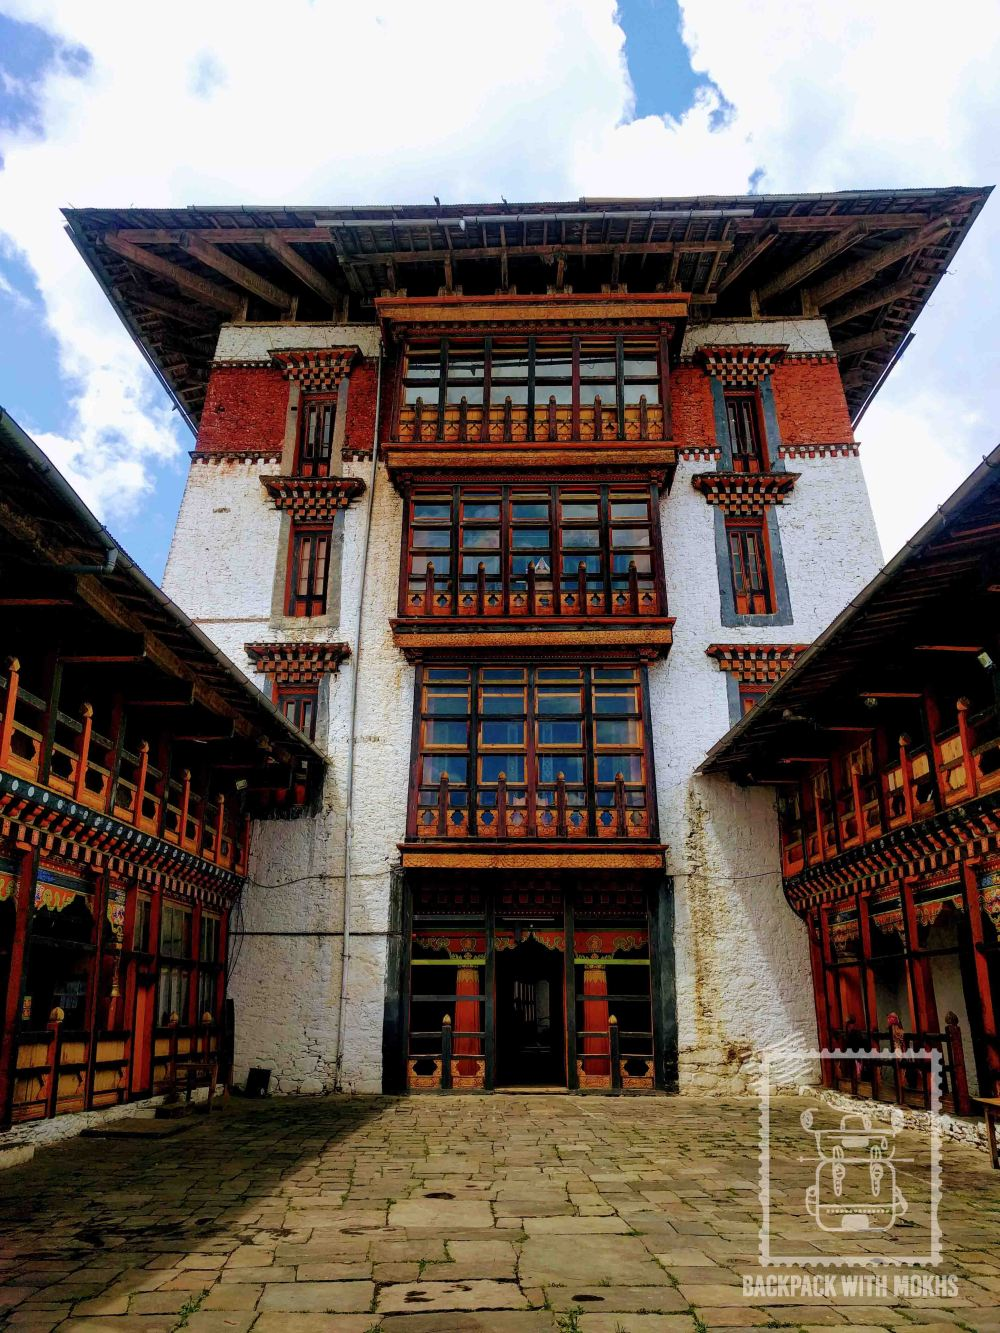 Dzongs are fortresses which serve as religious and administrative centers of a particular district (Dzongkhag). Bhutan does not have states/provinces but consists of 20 districts which make up the entire country.